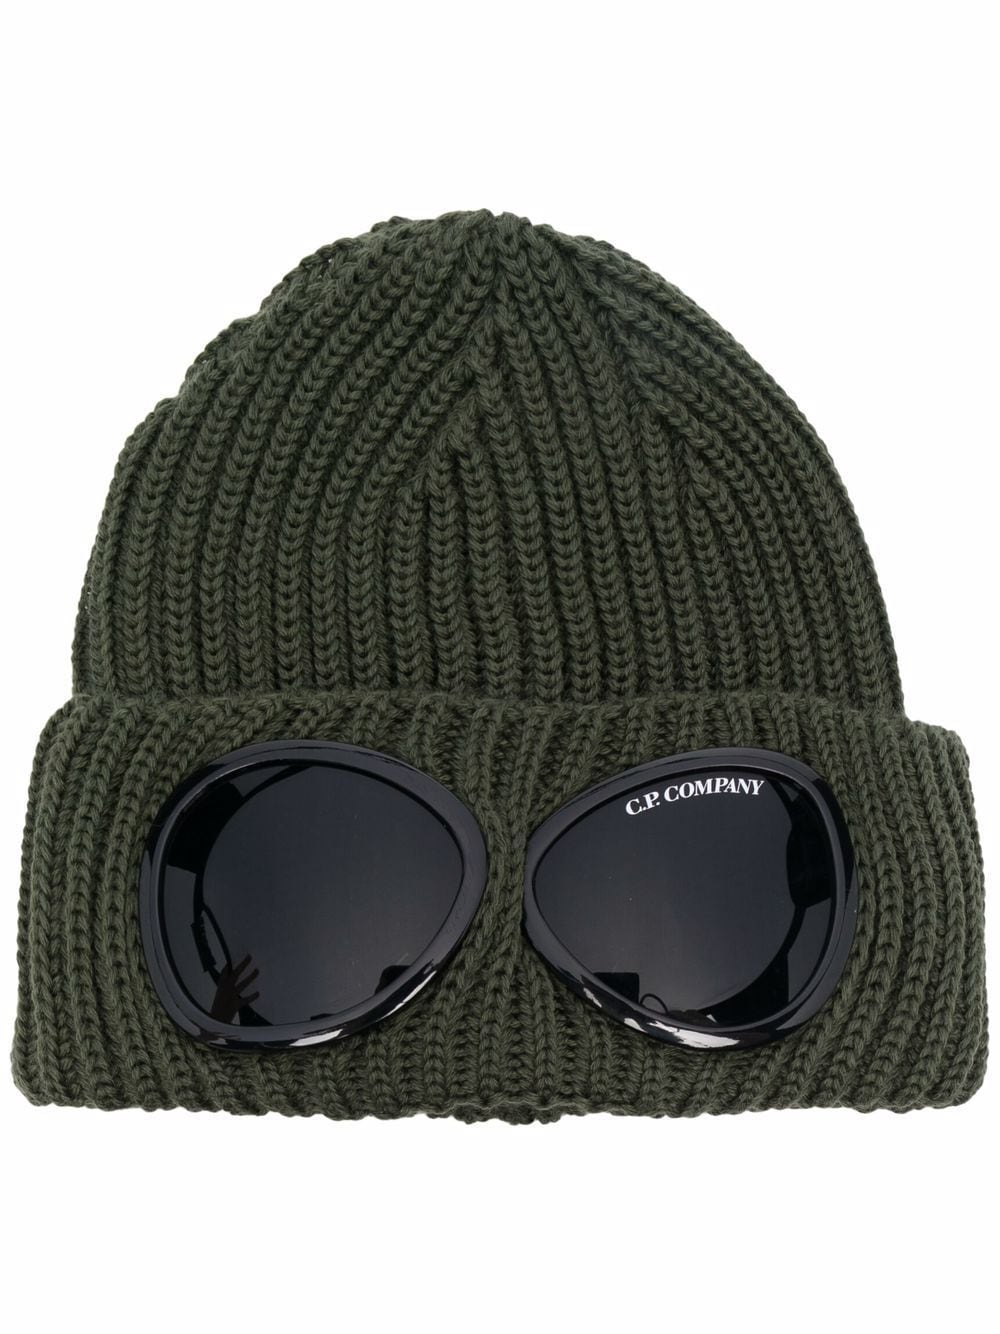 hat with applications man military green in wool C.P. COMPANY | Hats | 11CMAC122A005509A665